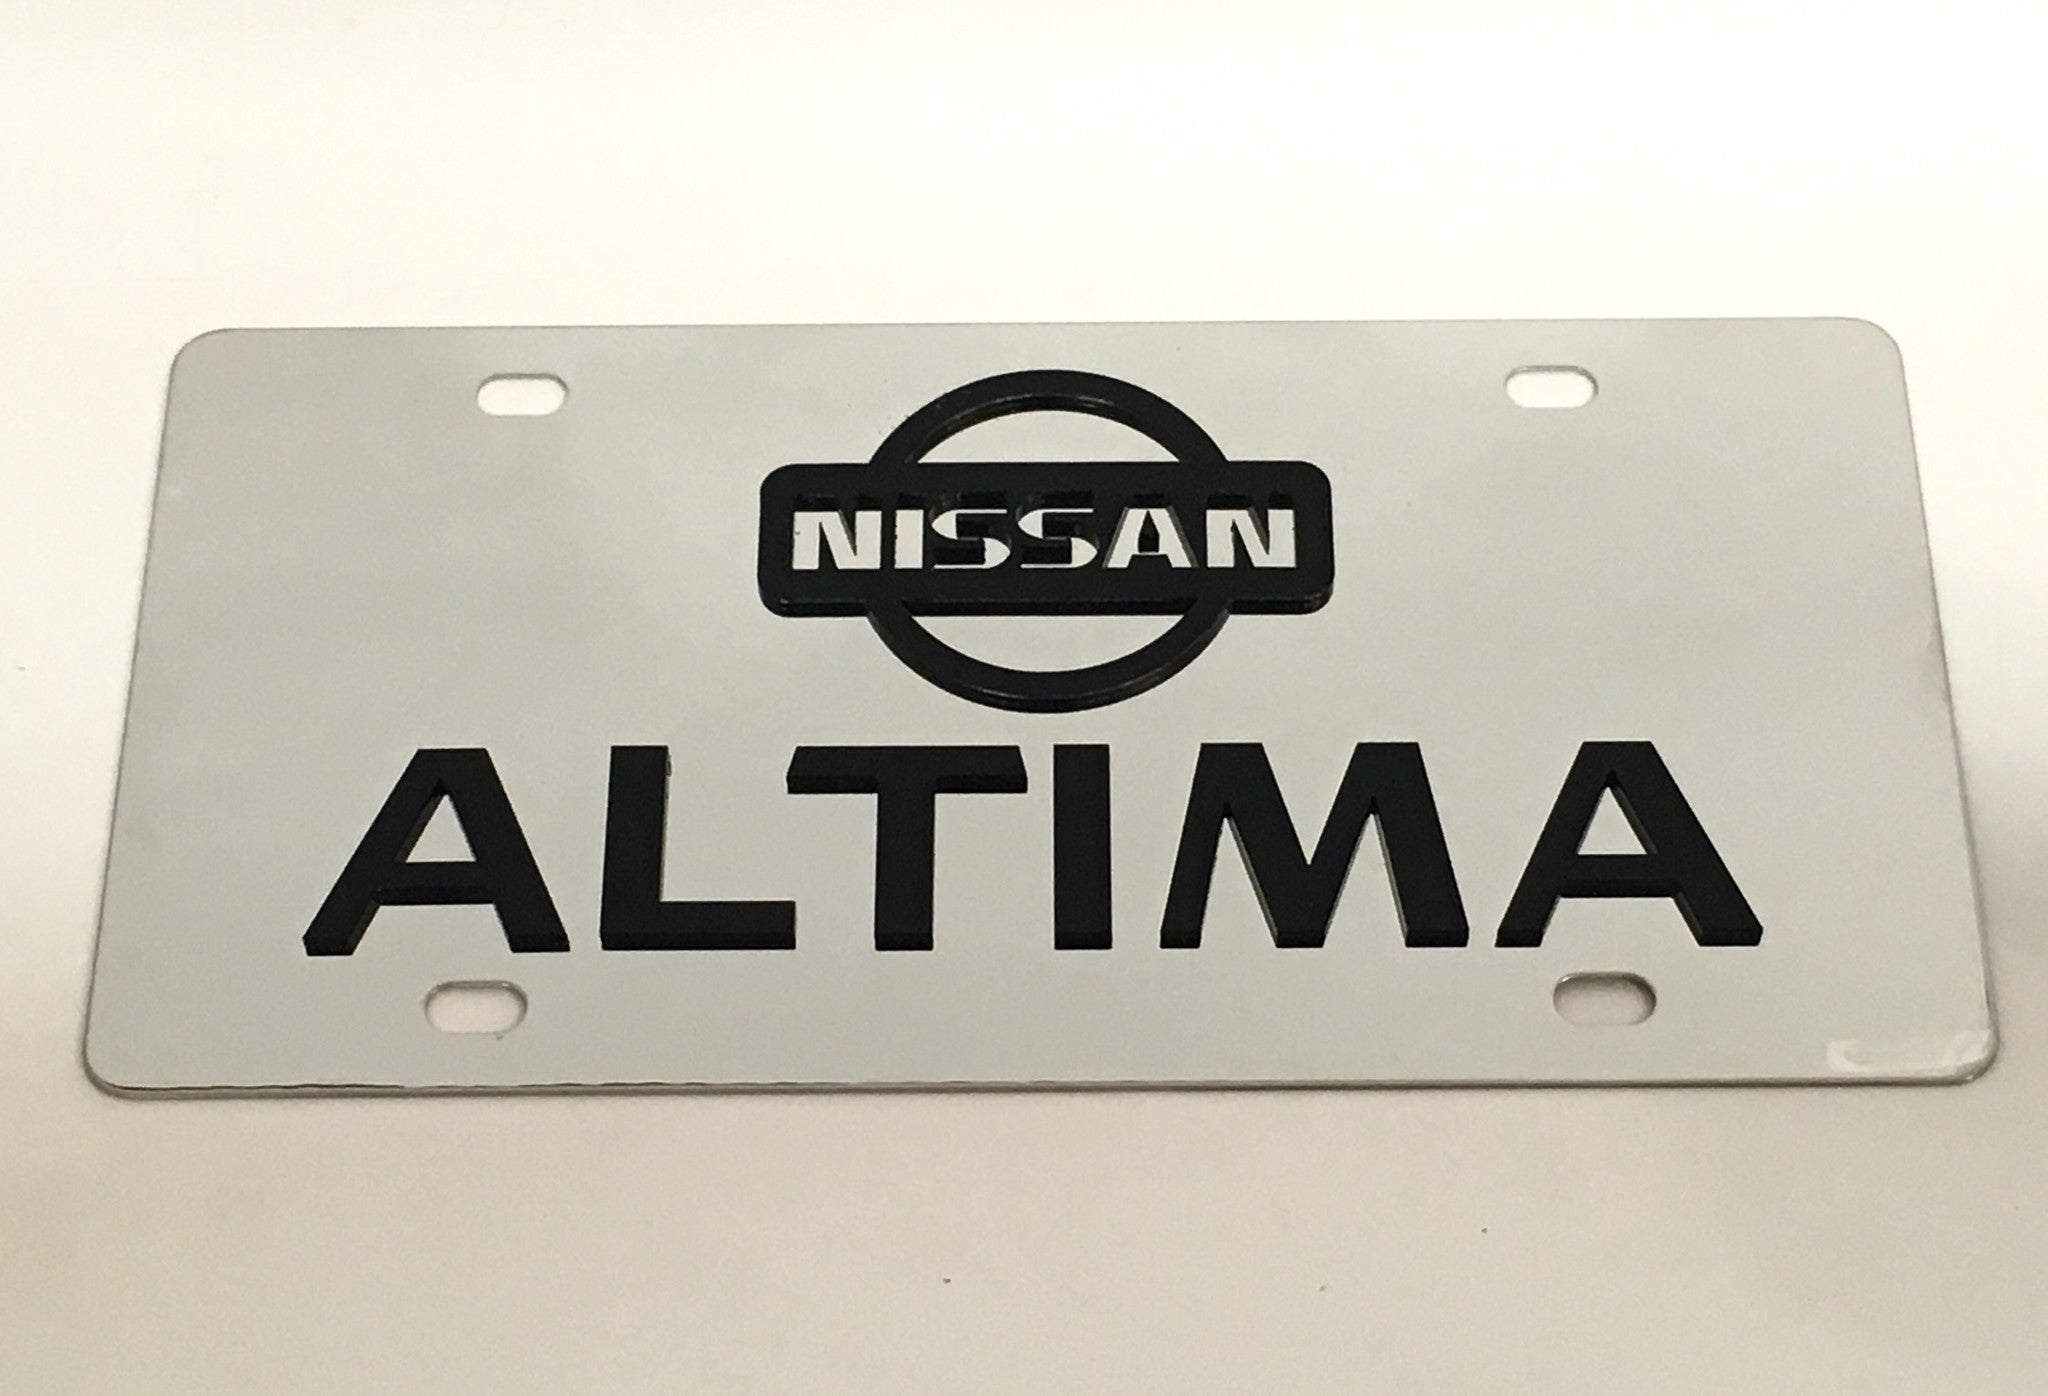 Nissan Altima Stainless Steel License Plate